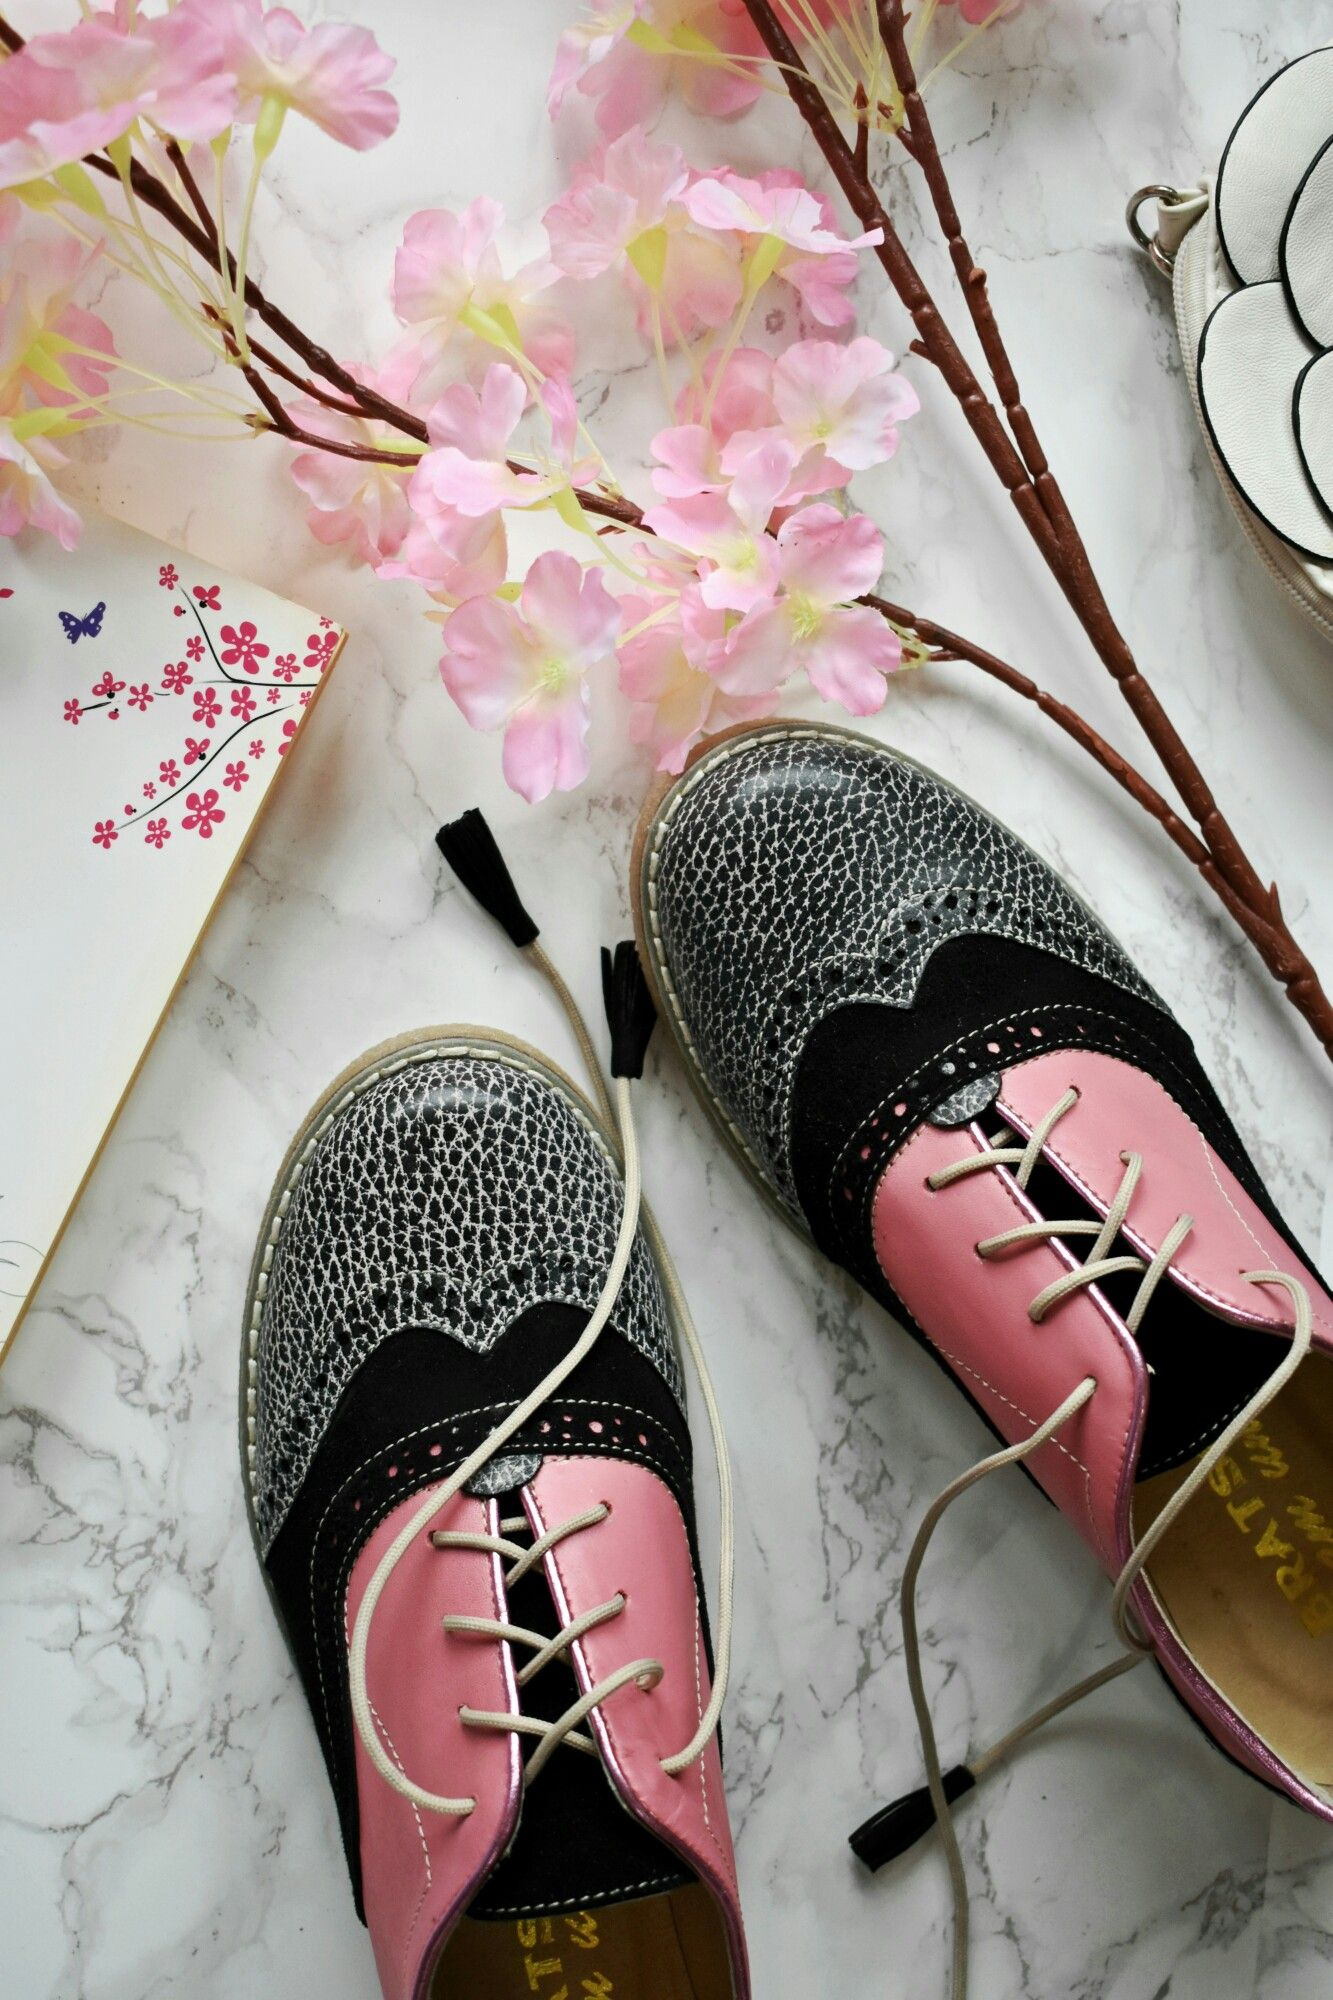 preview of sale usa online popular stores Bratscher Custom Shoes, Spring collection 2018, flat oxford ...